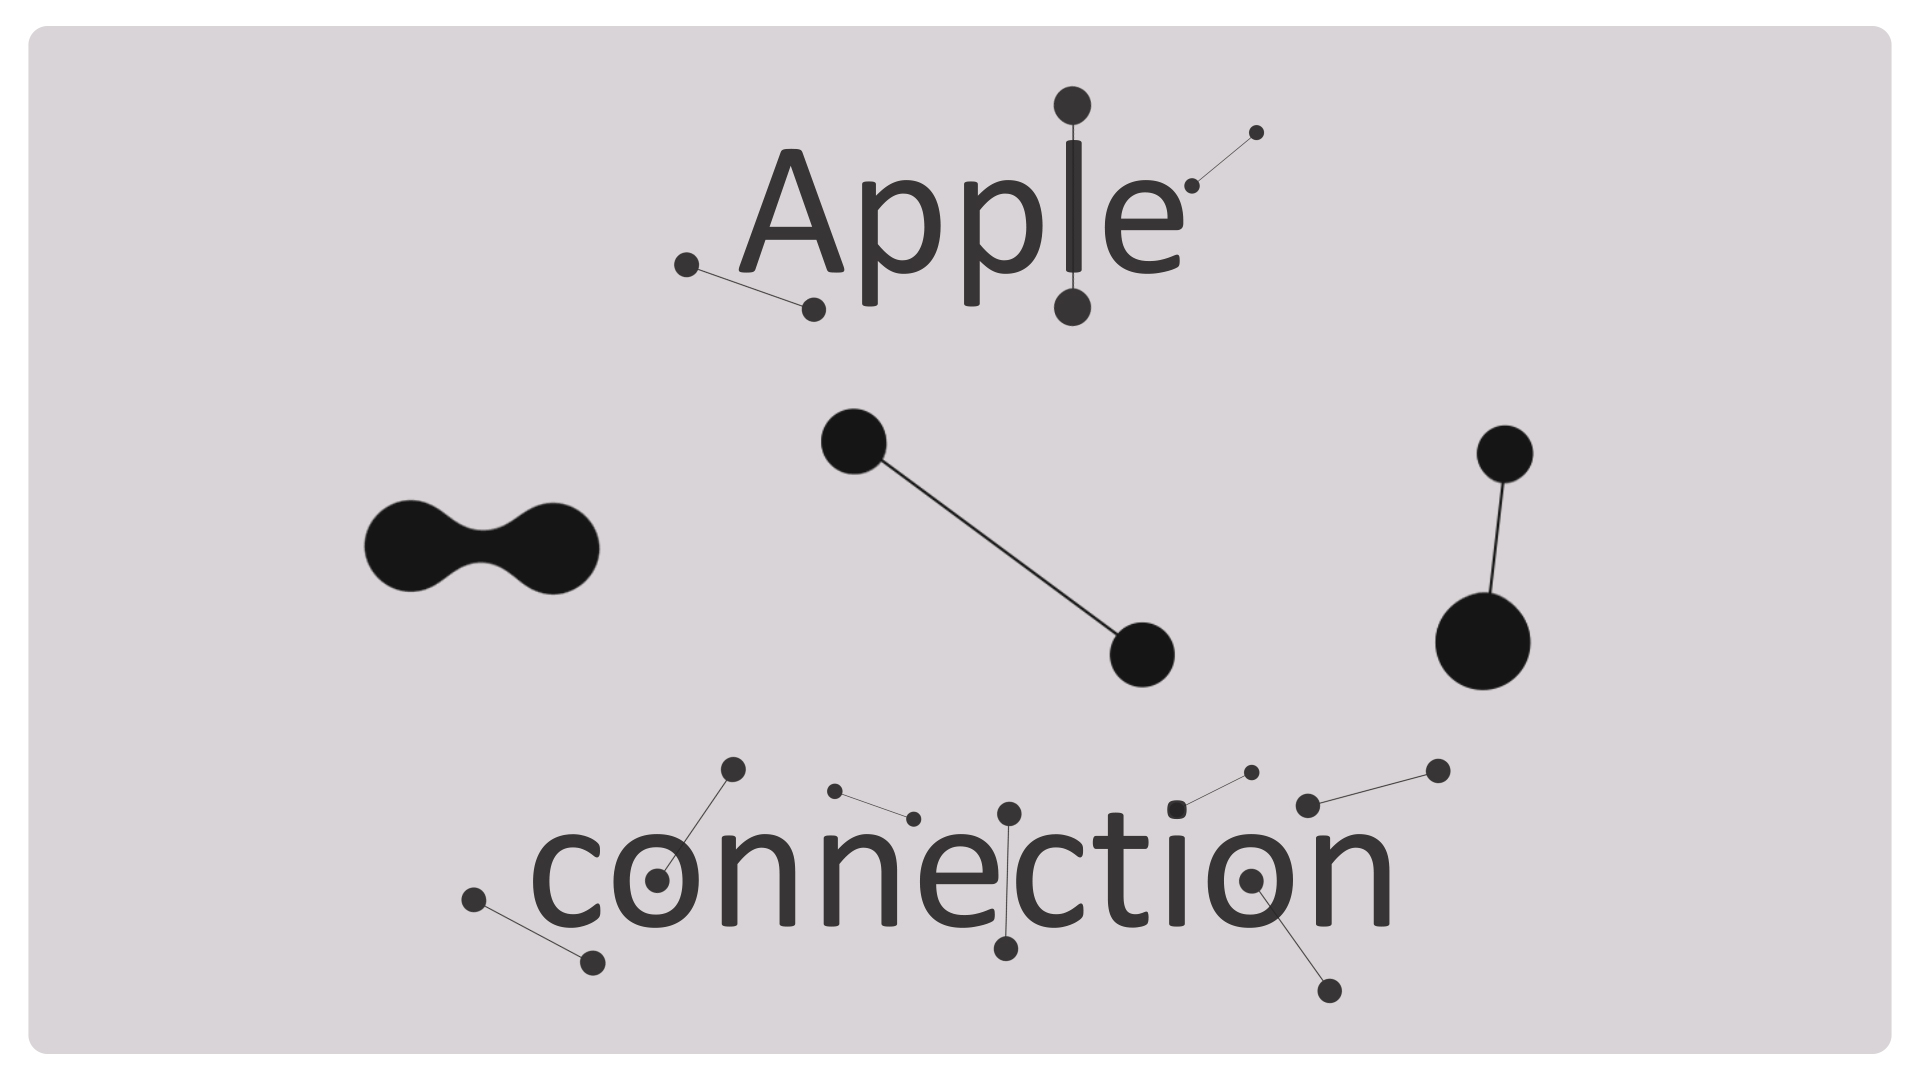 Apple animation connection